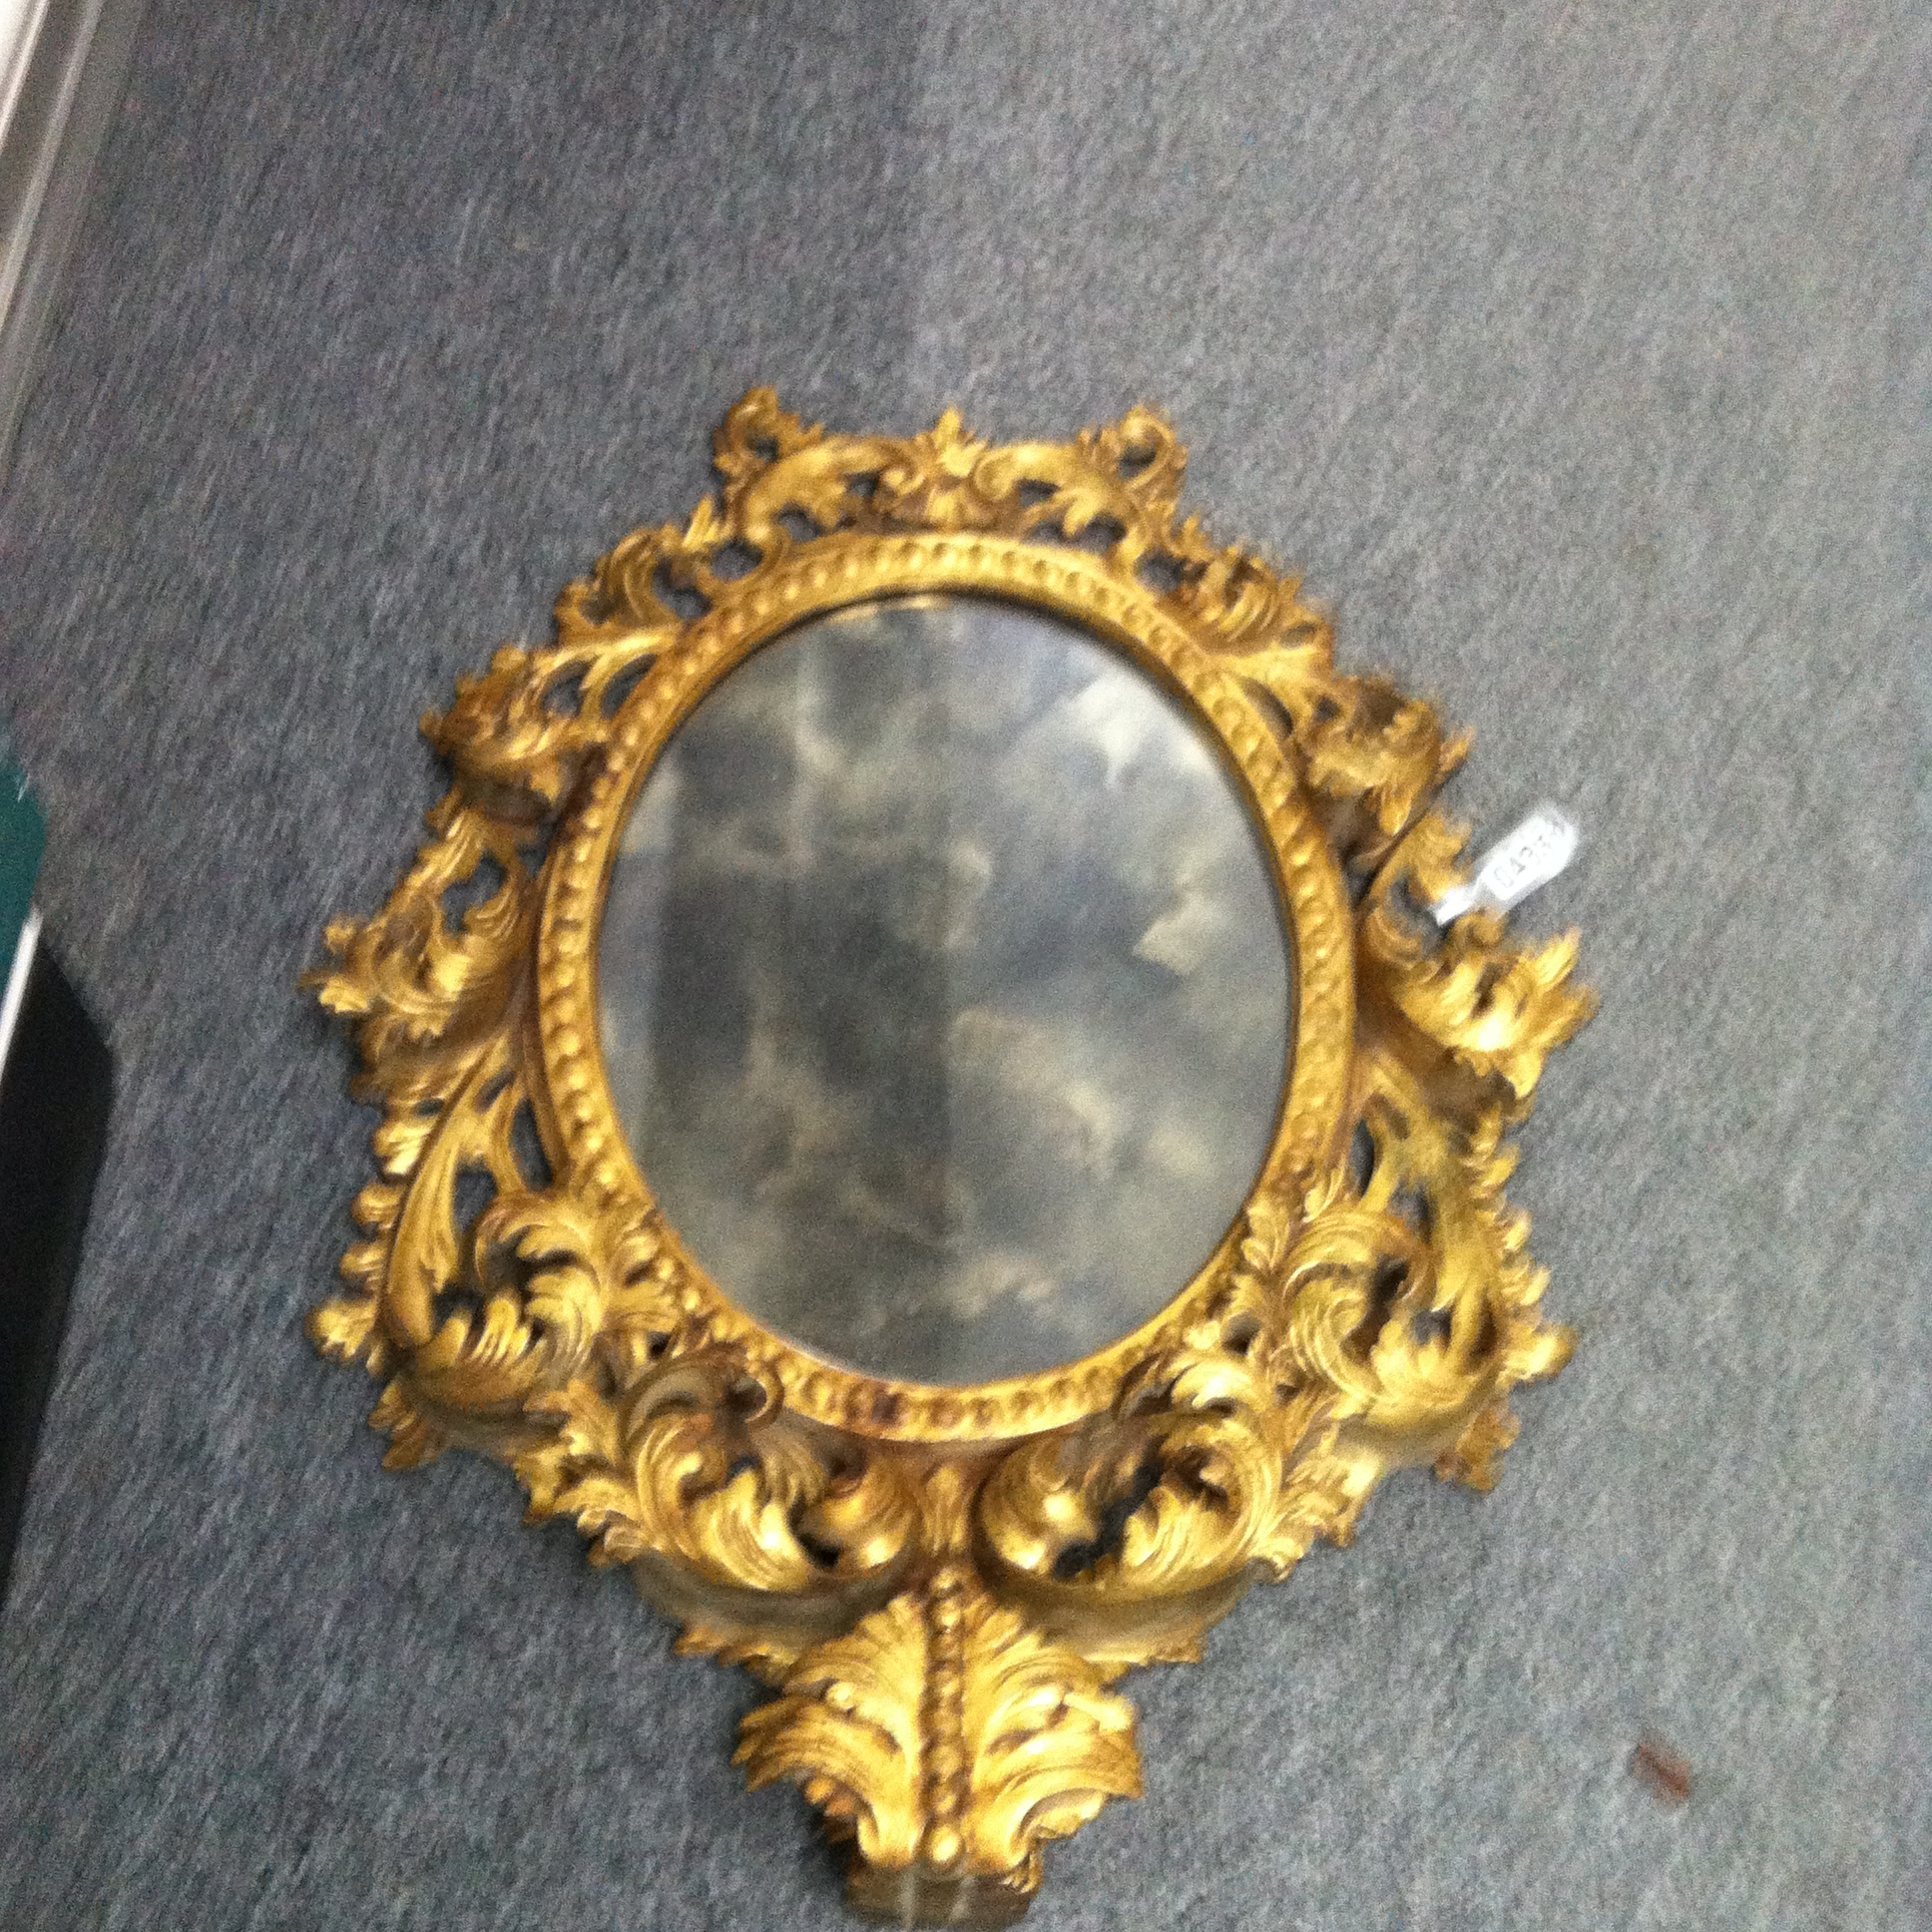 0433: Mirror with Ornate Wood Trim (Gold)